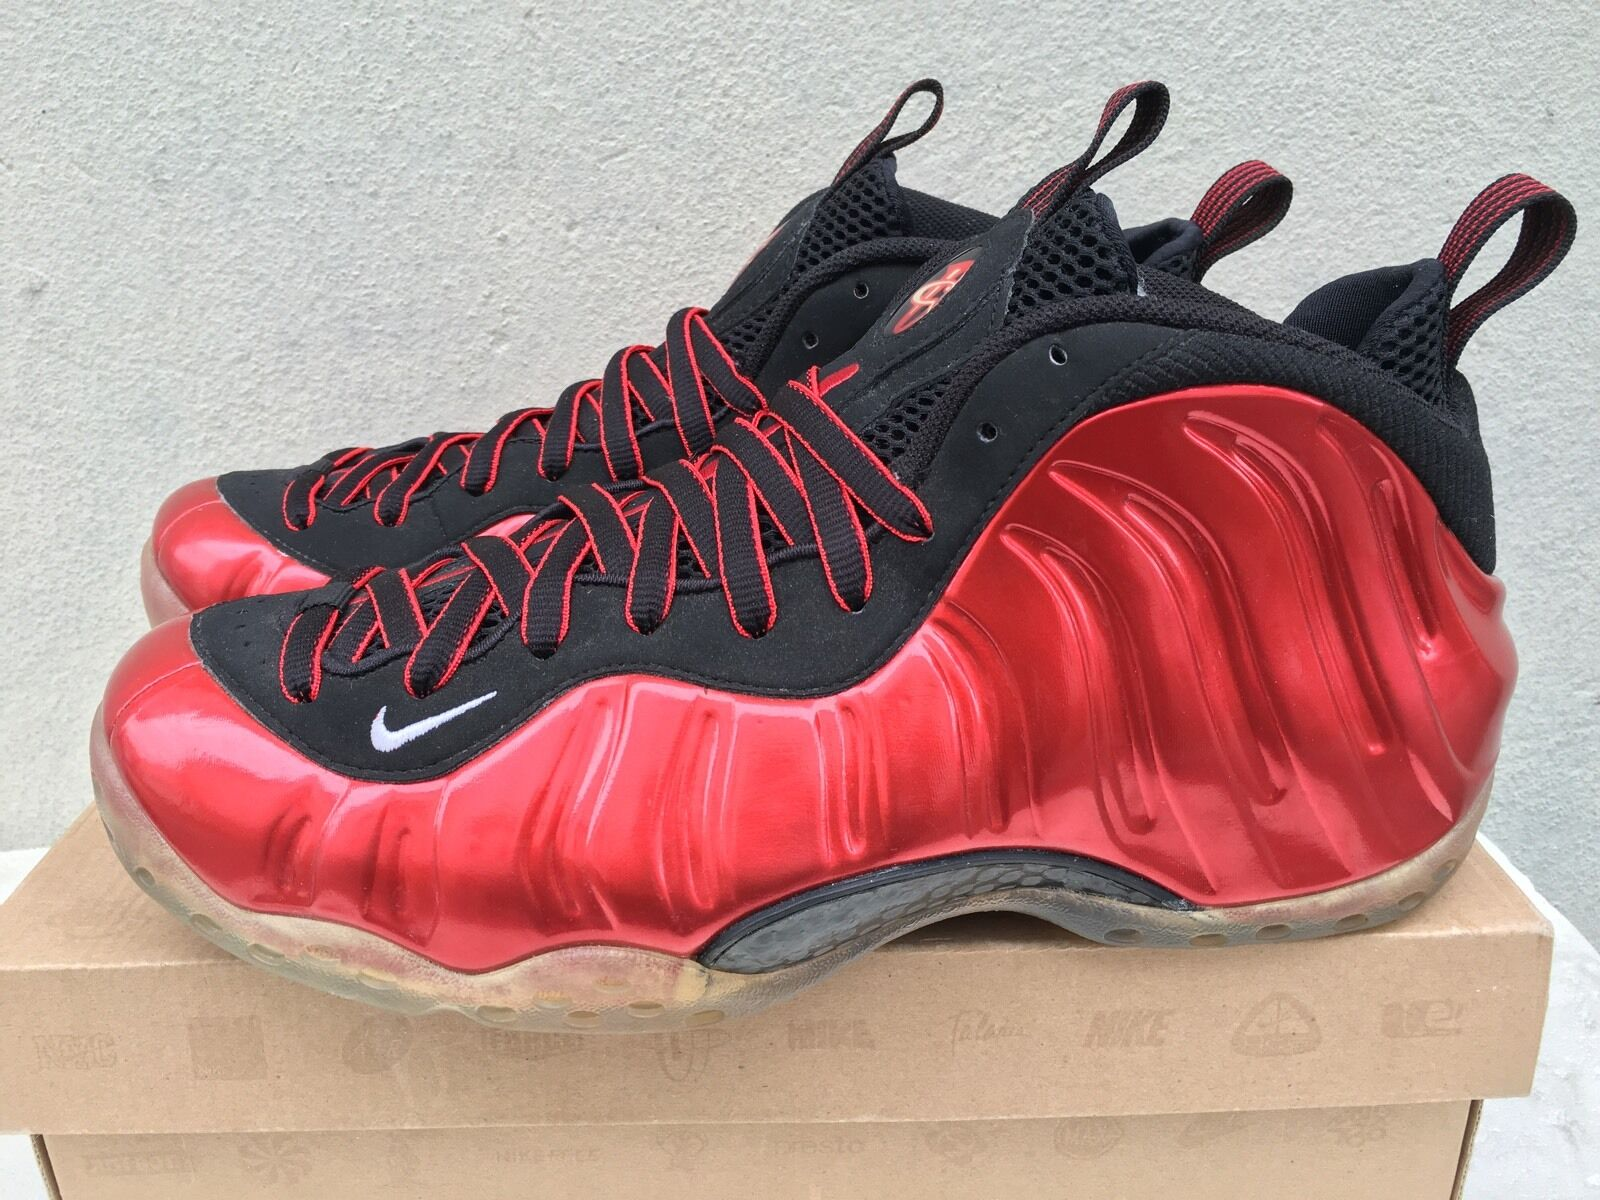 Nike Air Foamposite One Red black royal blue pro copper electric green hoh pearl best-selling model of the brand